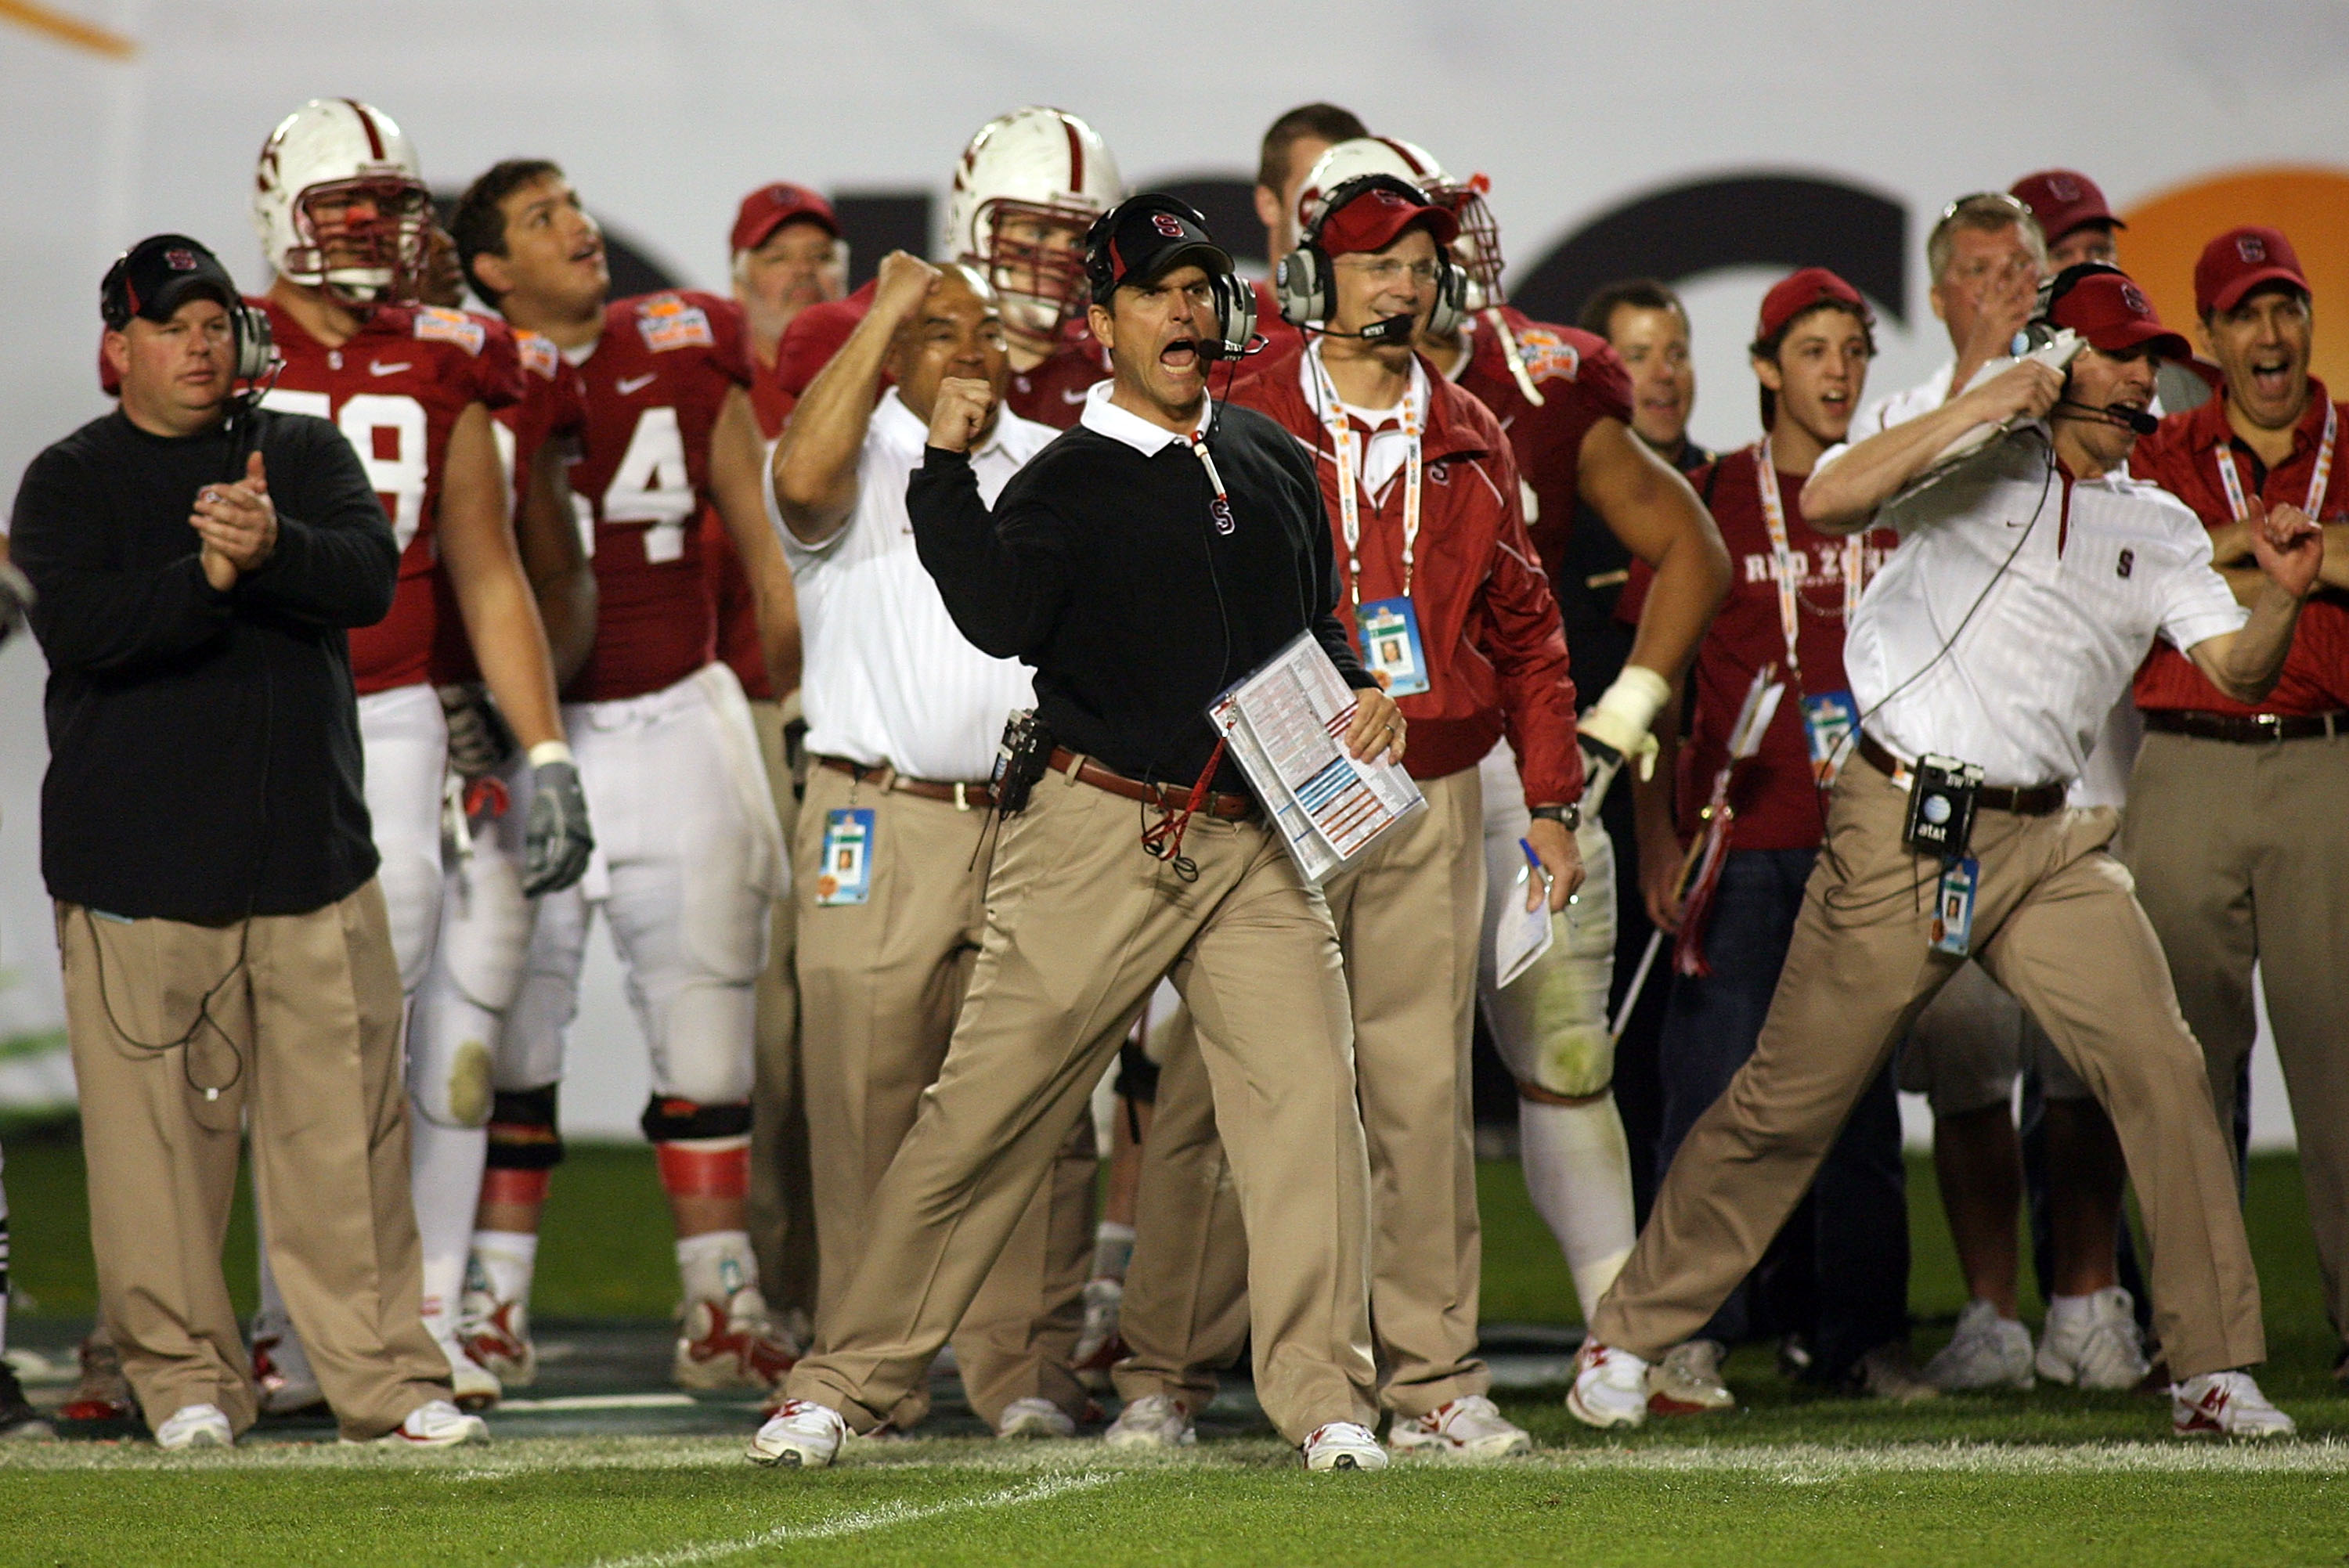 MIAMI, FL - JANUARY 03: Head coach Jim Harbaugh of the Stanford Cardinal reacts as he coaches against the Virginia Tech Hokies during the 2011 Discover Orange Bowl at Sun Life Stadium on January 3, 2011 in Miami, Florida. Stanford won 40-12. (Photo by Mar